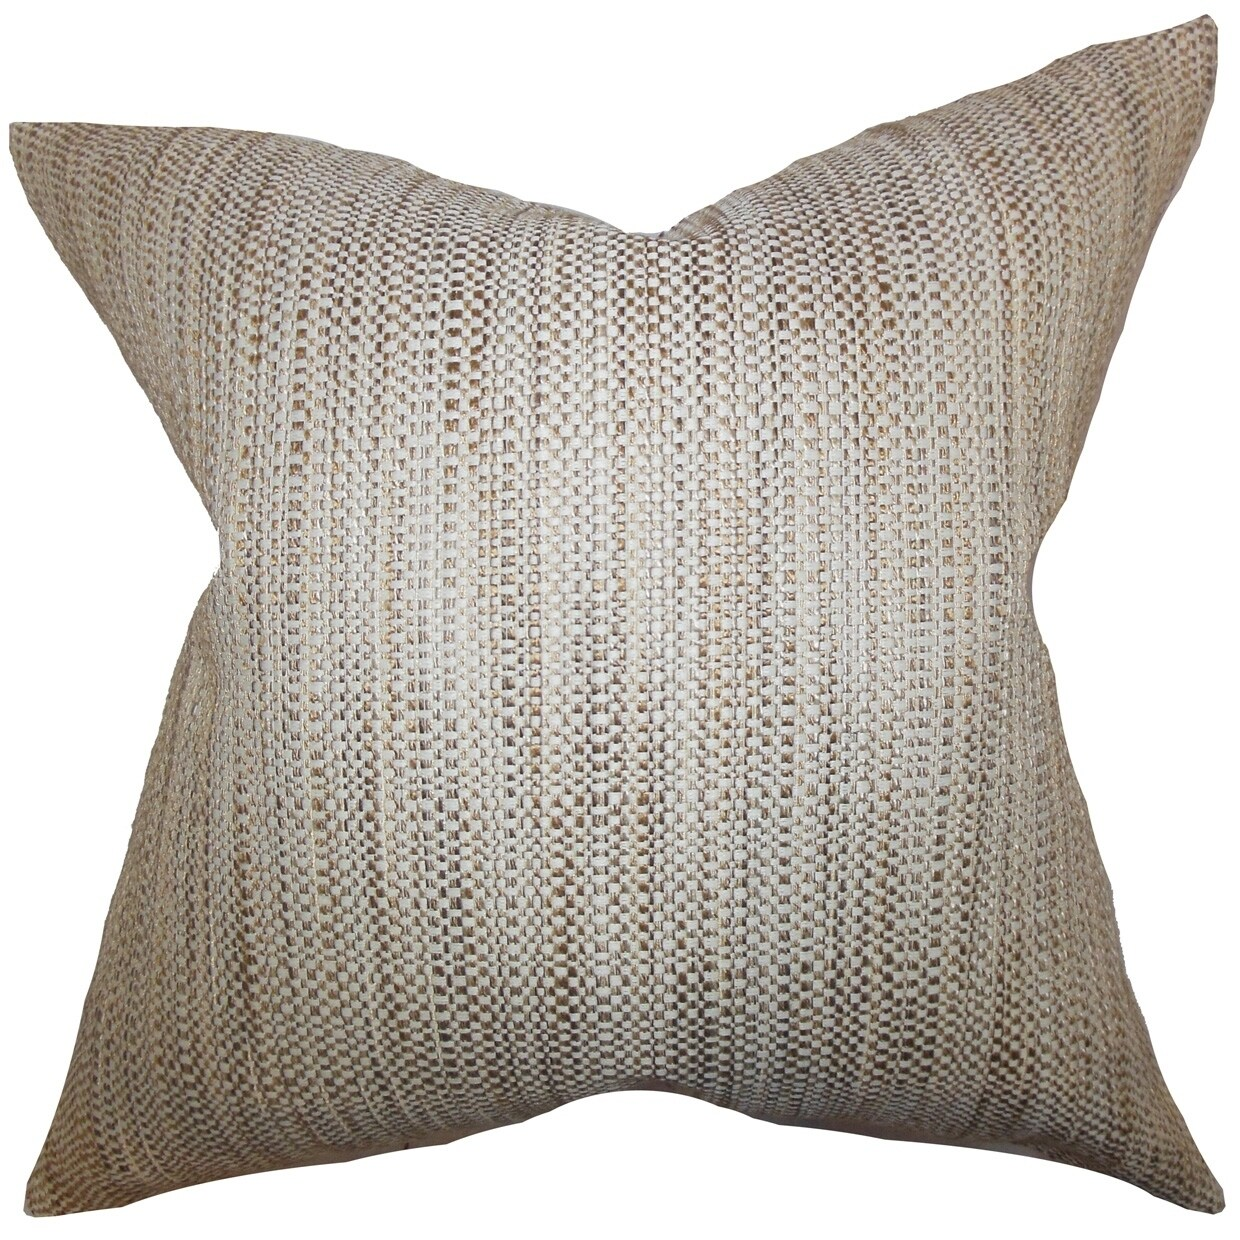 optical webster throw set products decorative front in pillows tweed white burlap flange with of weavers pillow woven